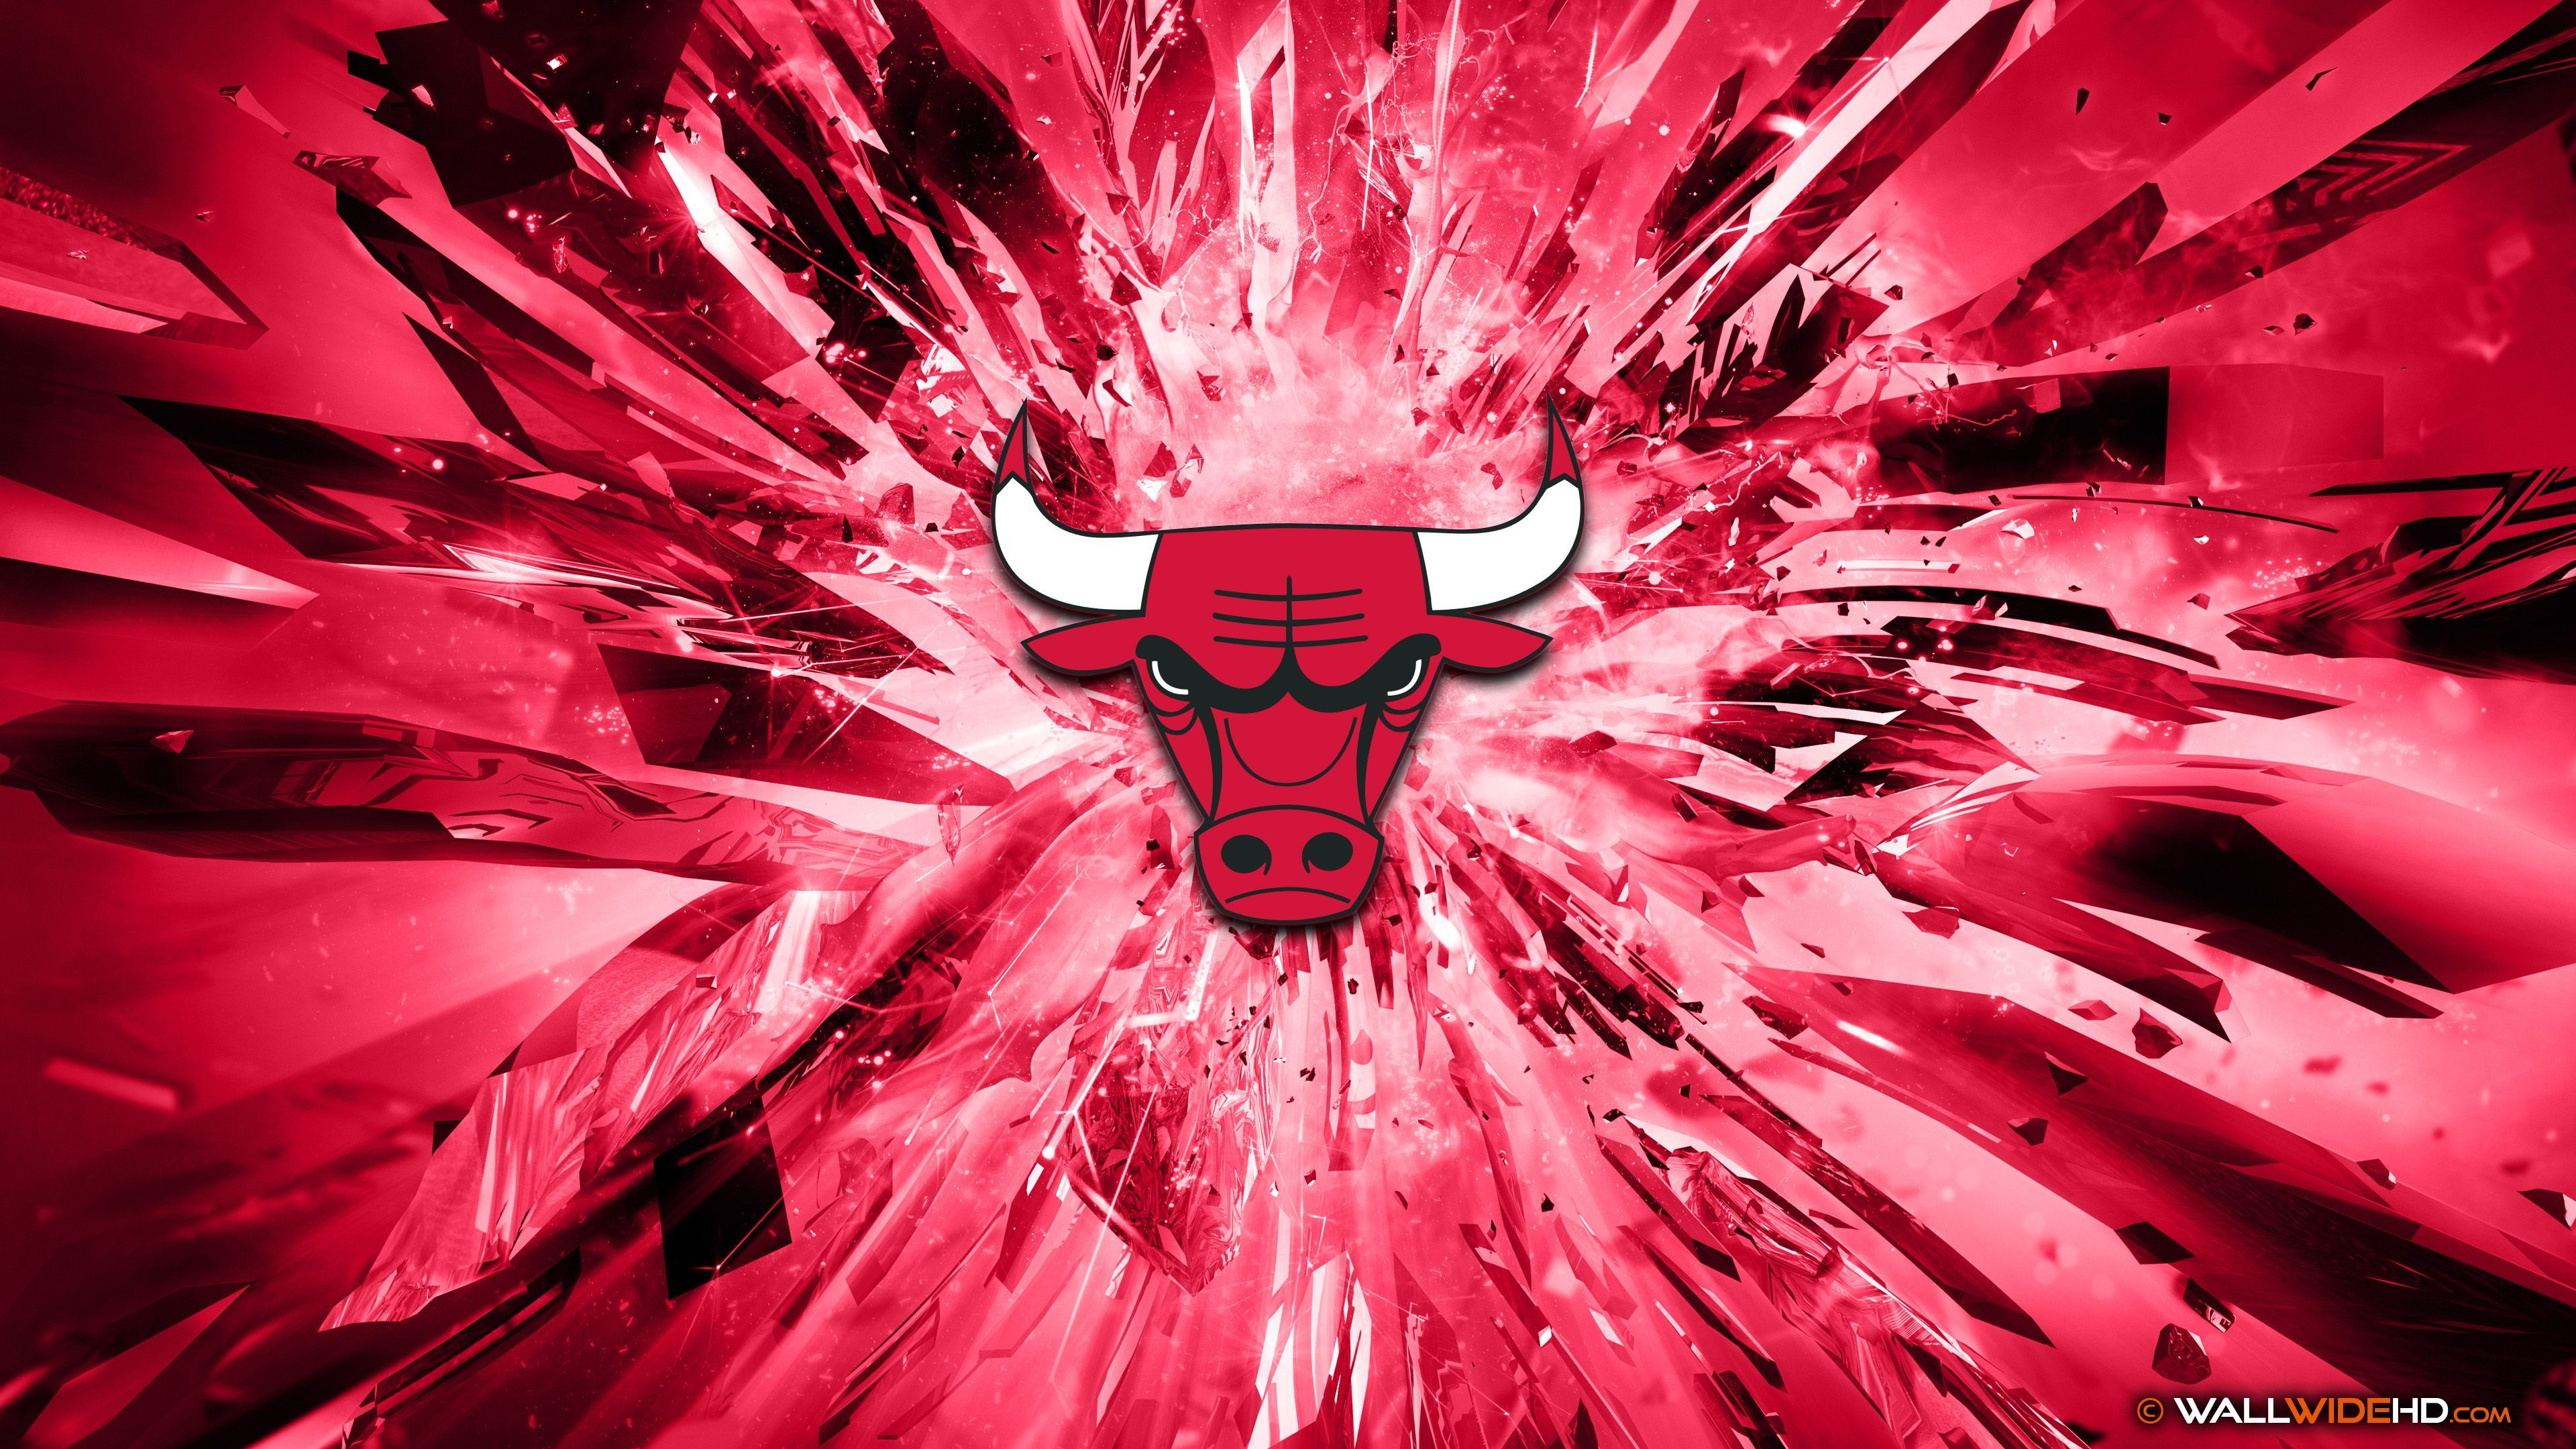 4K Chicago Bulls Photos